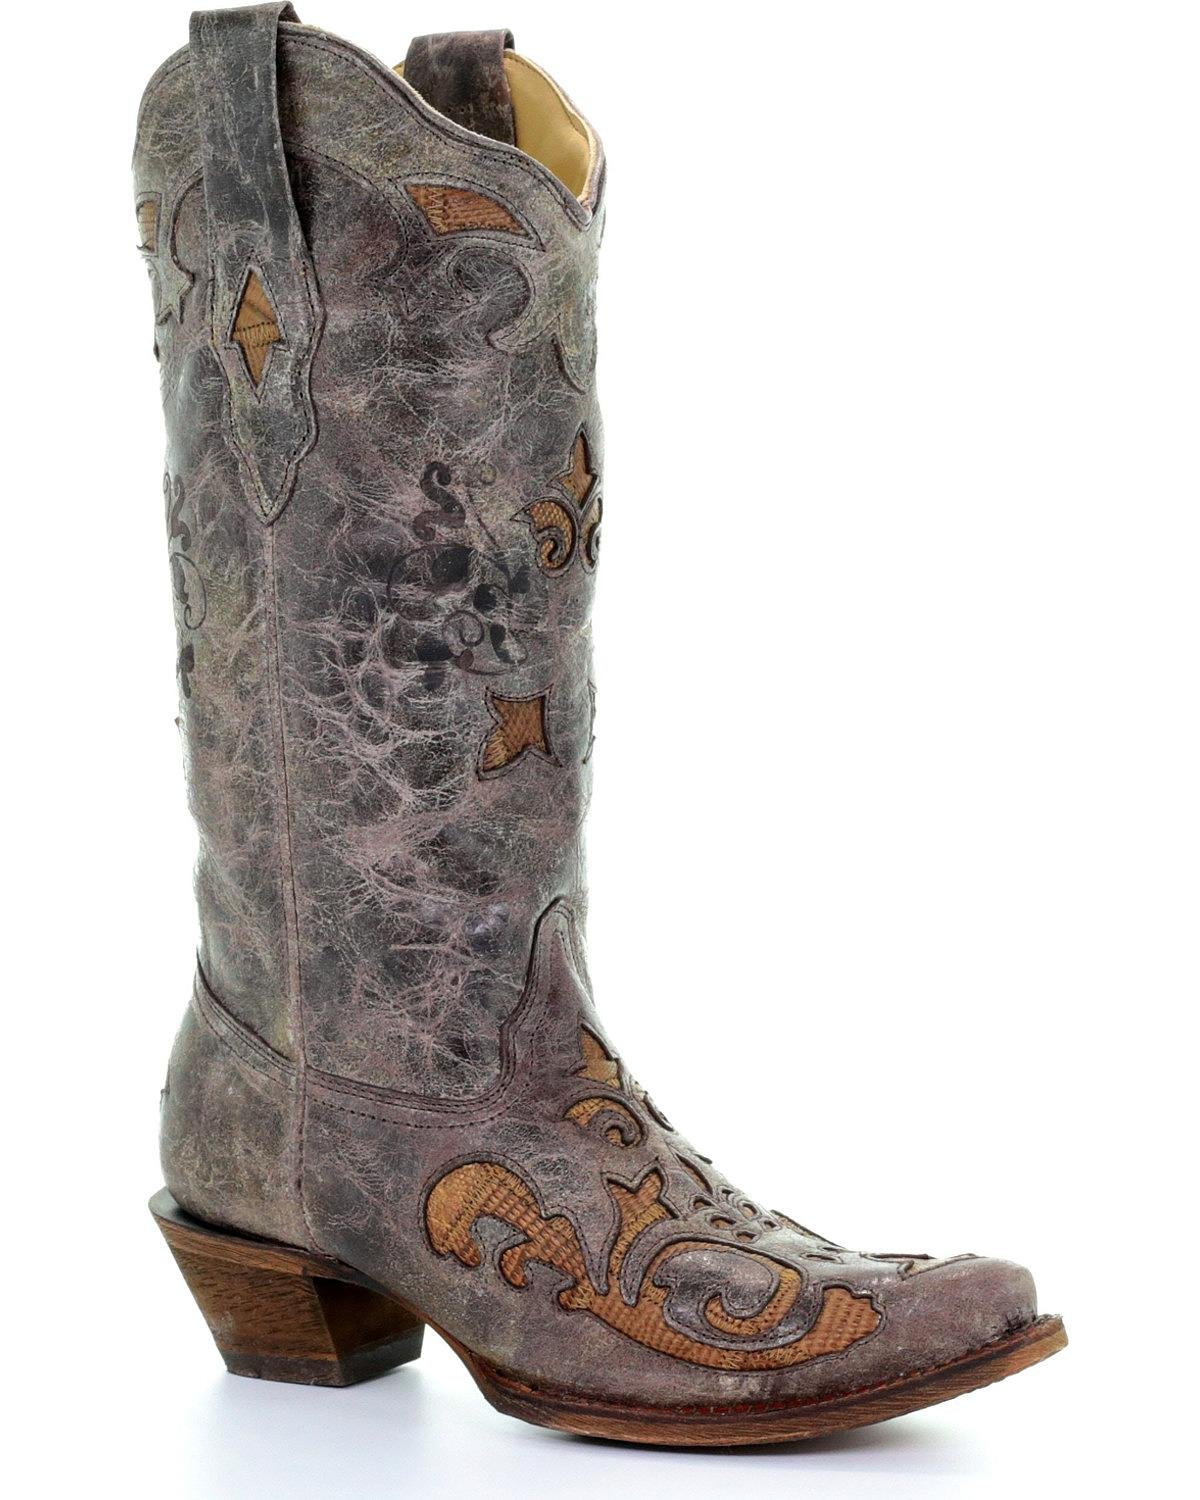 Corral Women's Vintage Antique Saddle Lizard Inlay Cowgirl Boot Snip Toe Brown 8 M